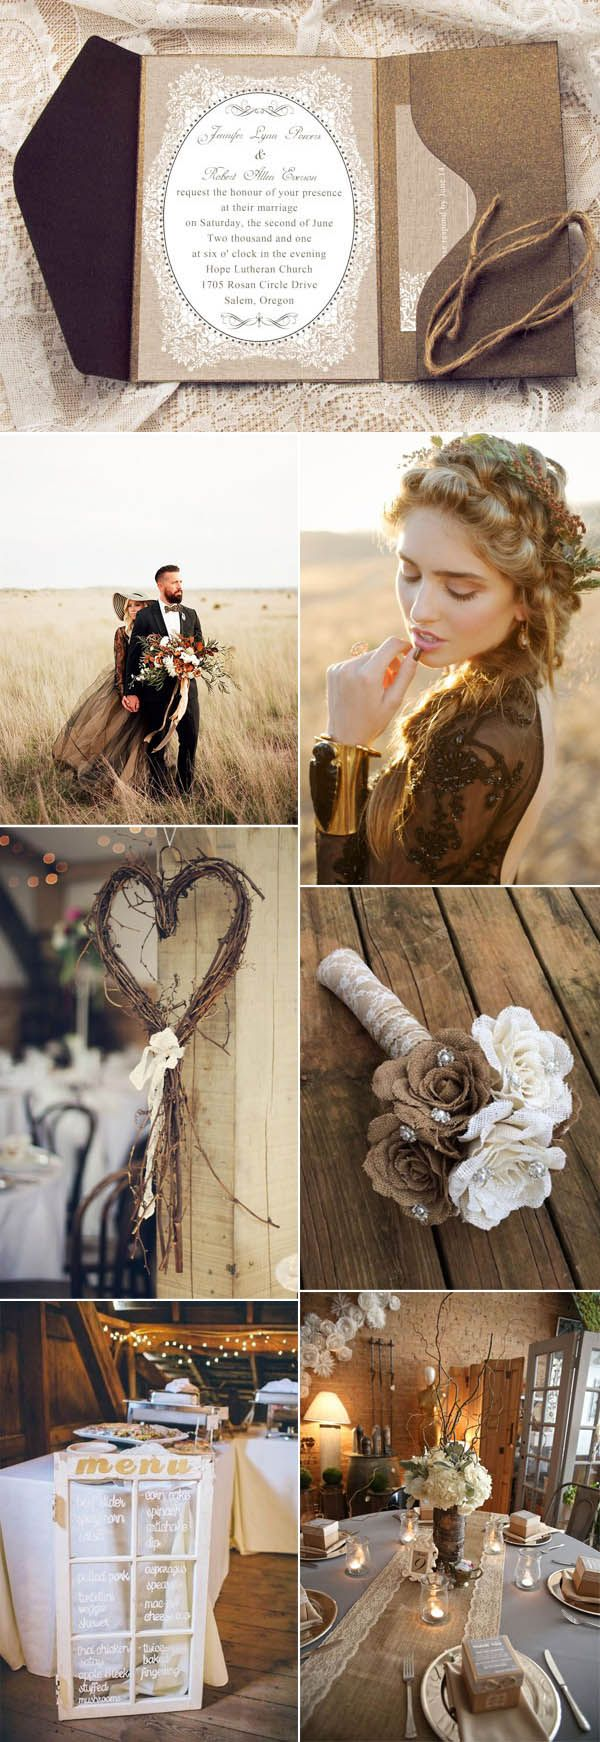 best wedding themes images on pinterest wedding colors